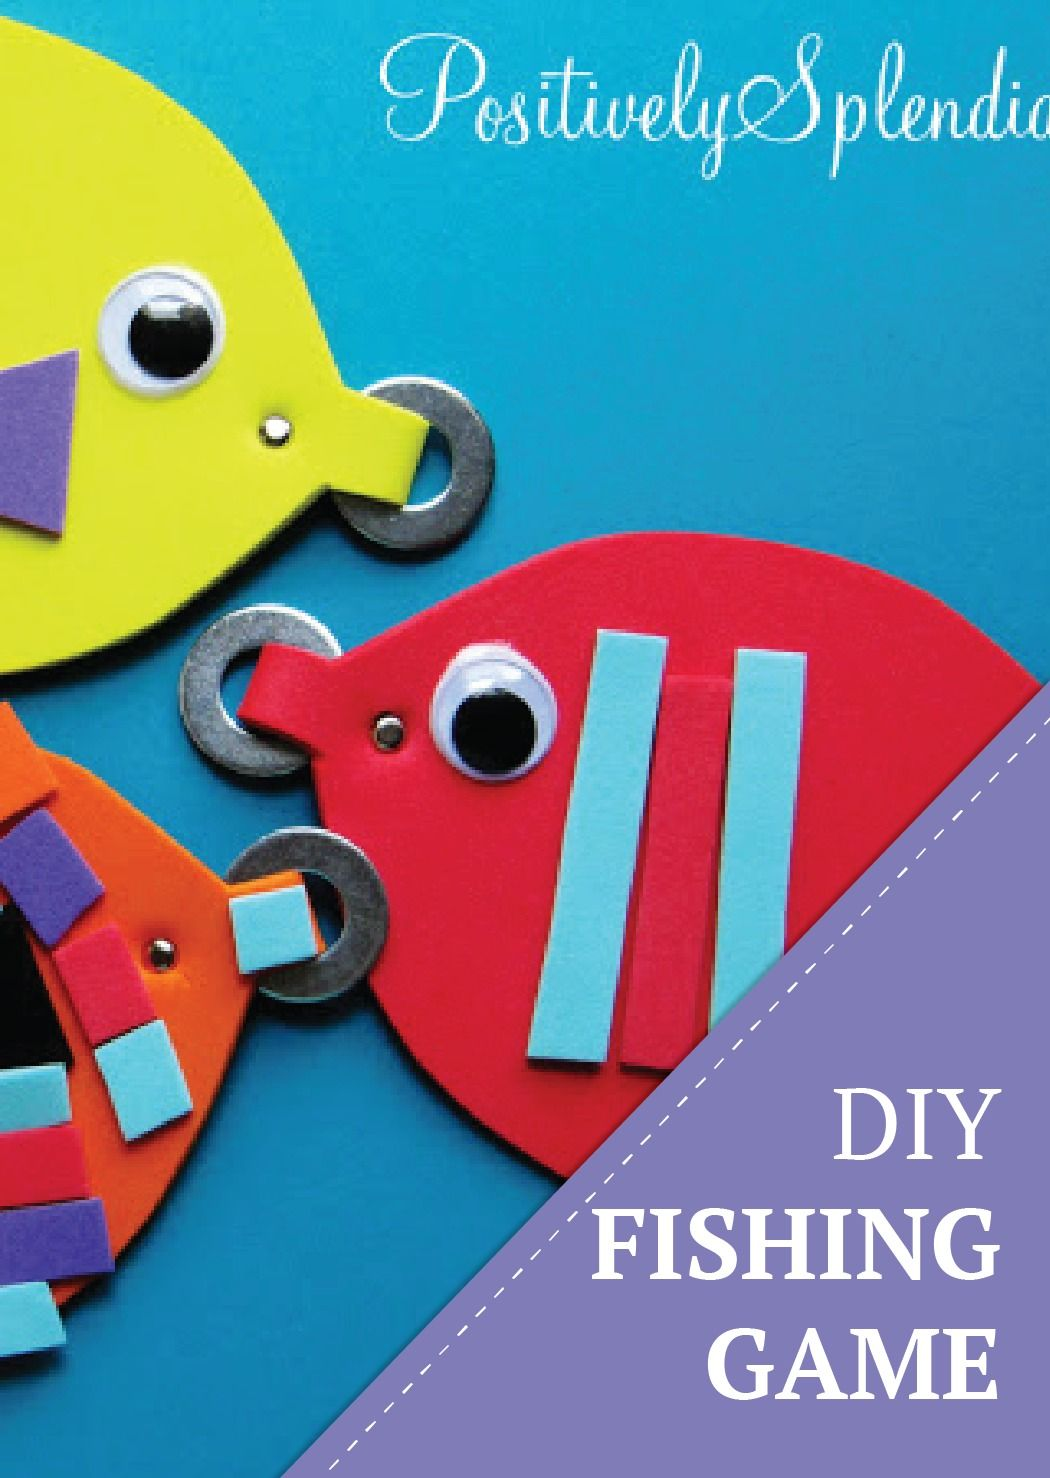 Let's Go Fishing! Diy Magnetic Game For Kids